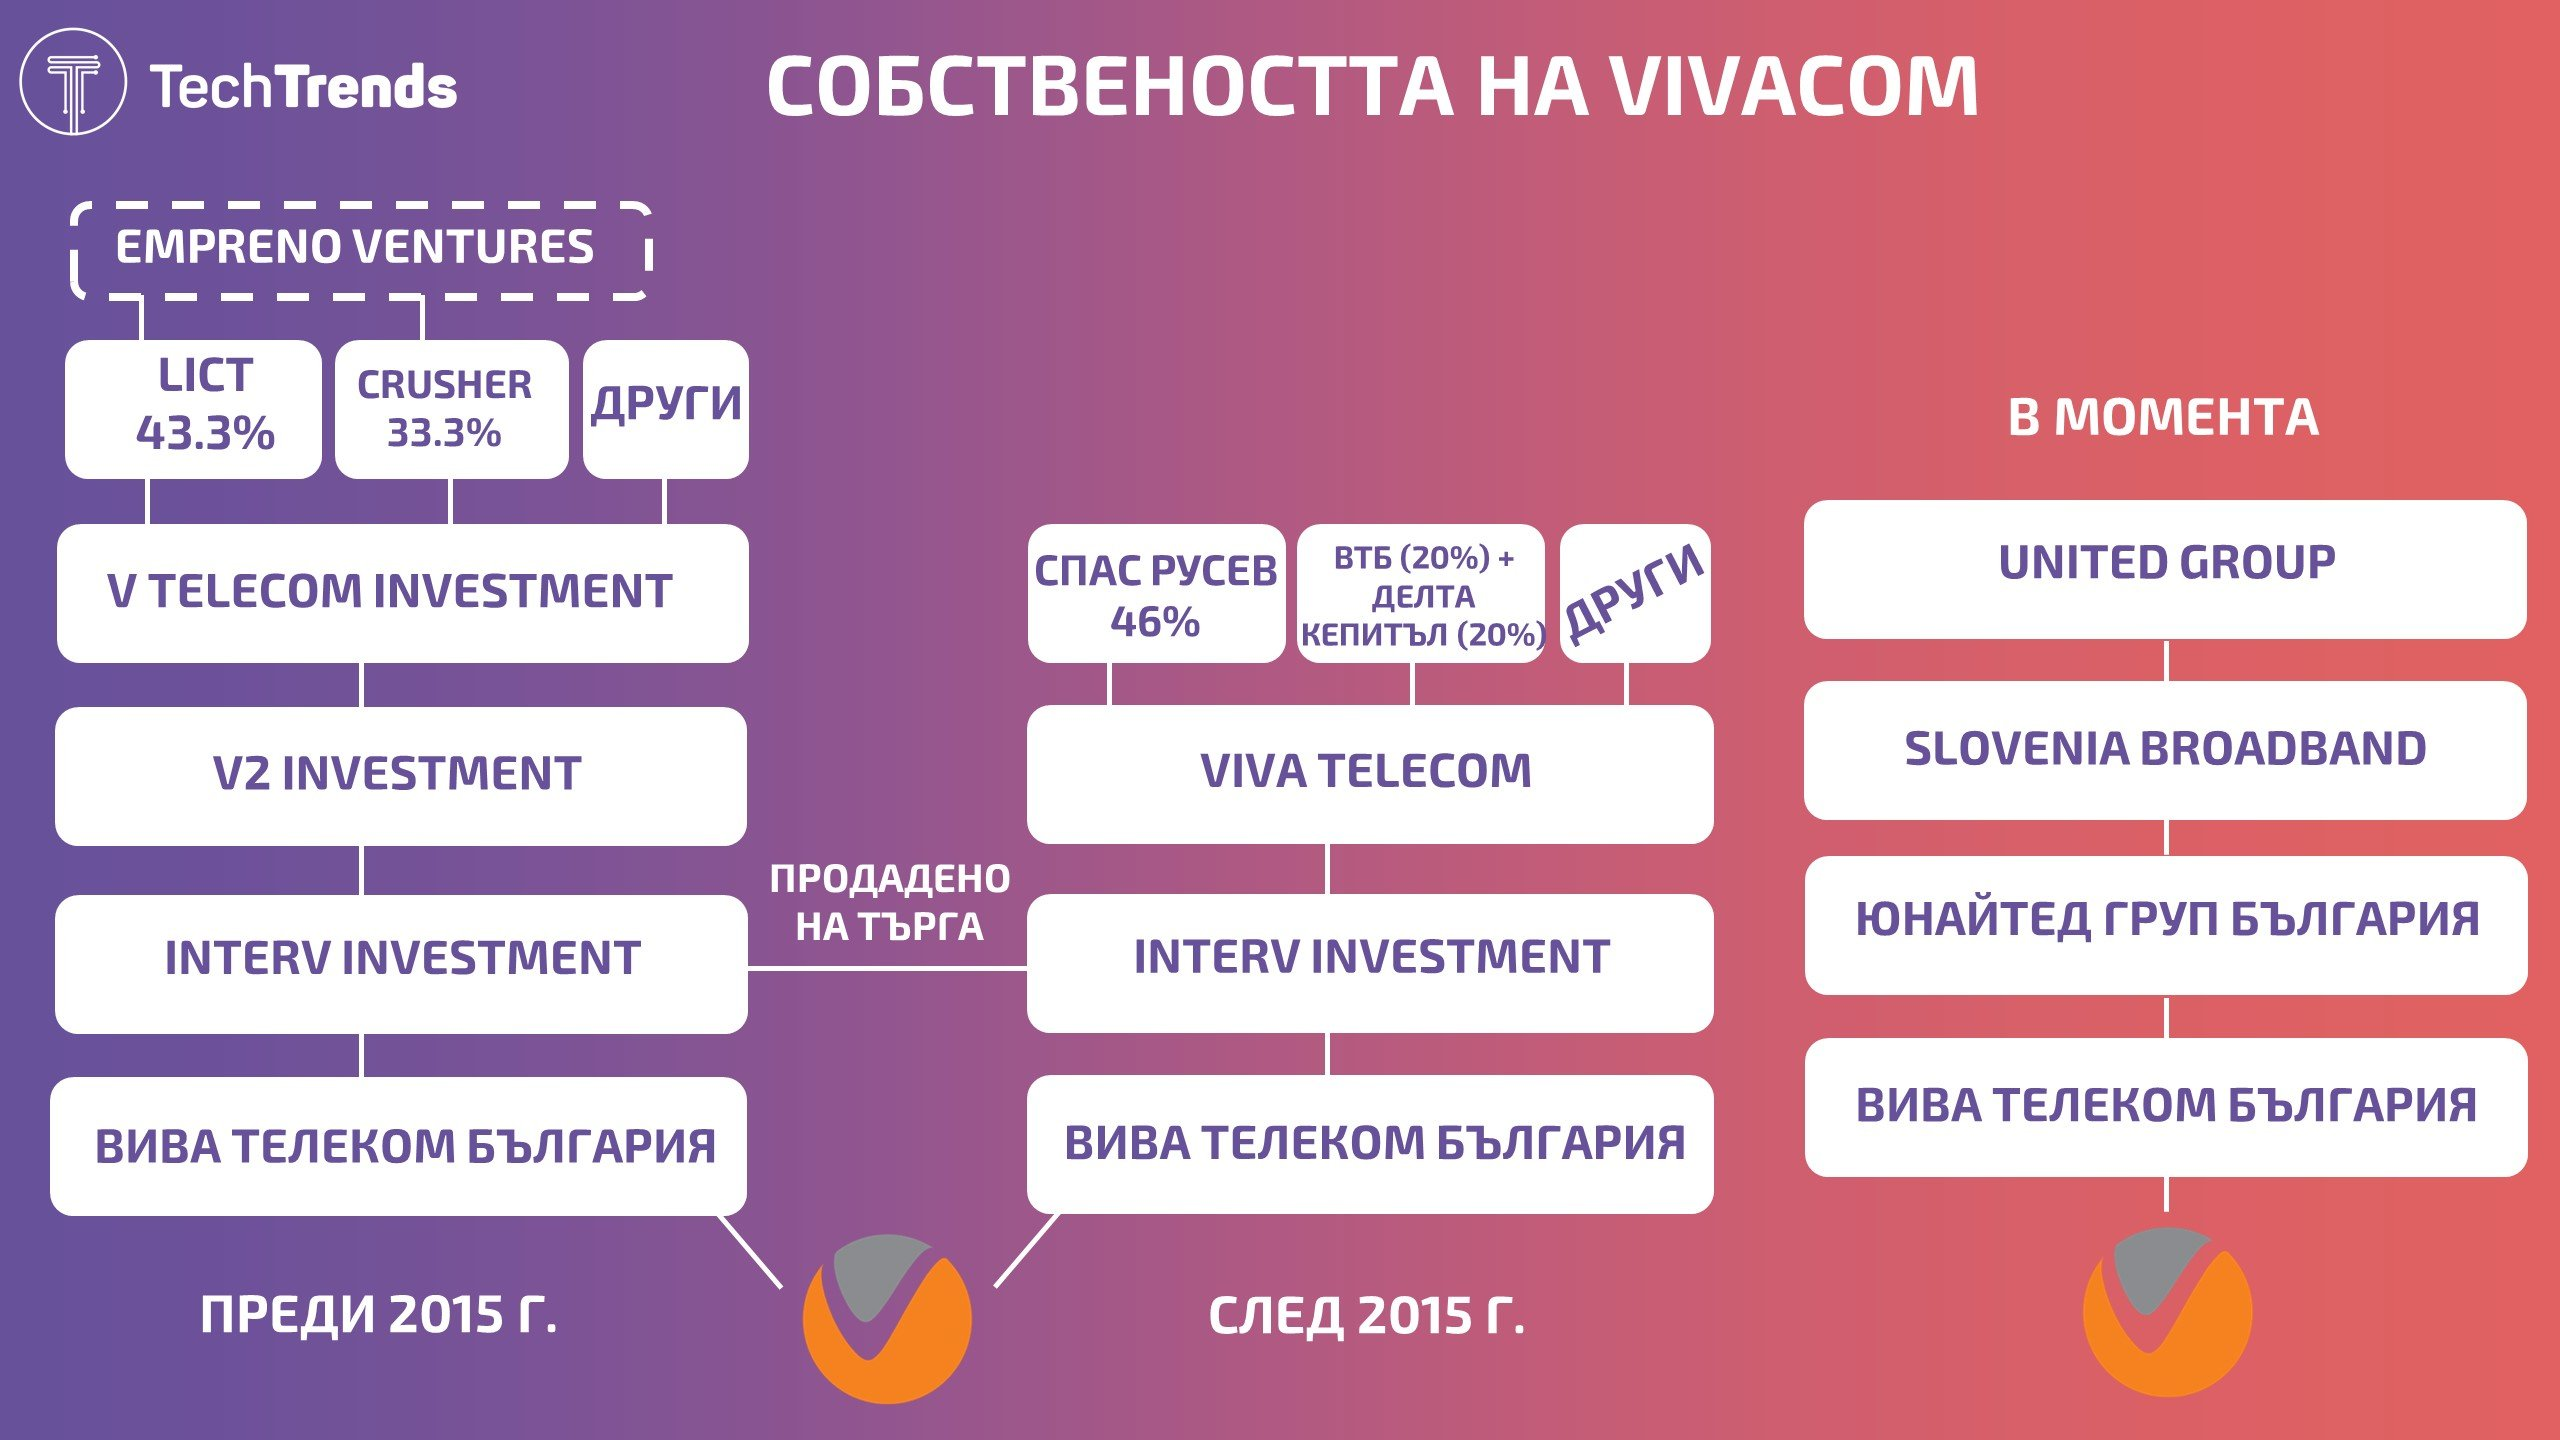 Vivacom Ownership Structure 2021